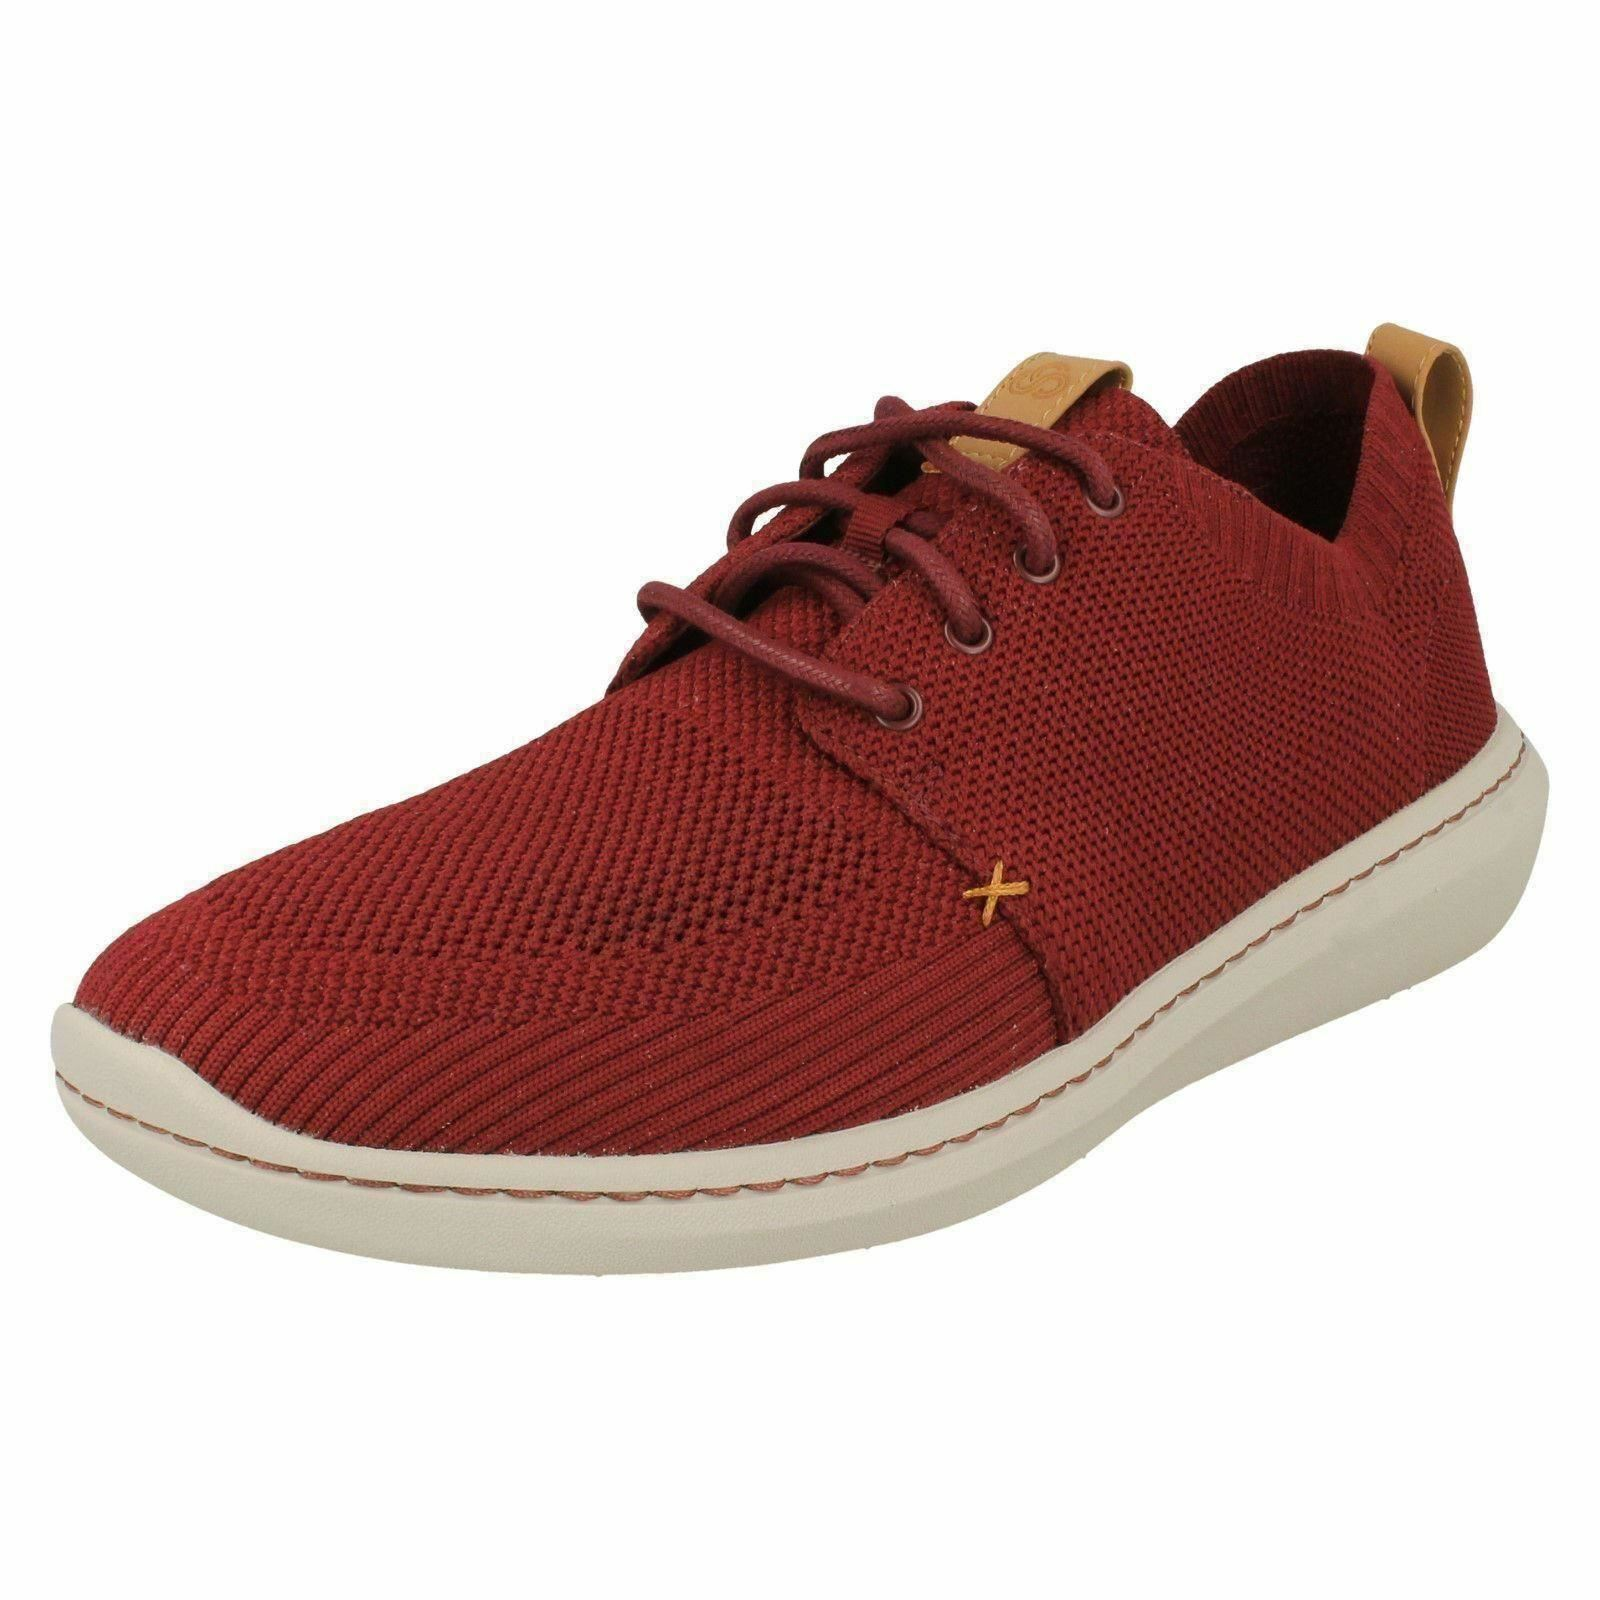 MENS SHOES CLARKS LACE UP CASUAL CLOUDSTEPPERS TRAINERS SHOES MENS SIZE STEP URBAN MIX 2079b5